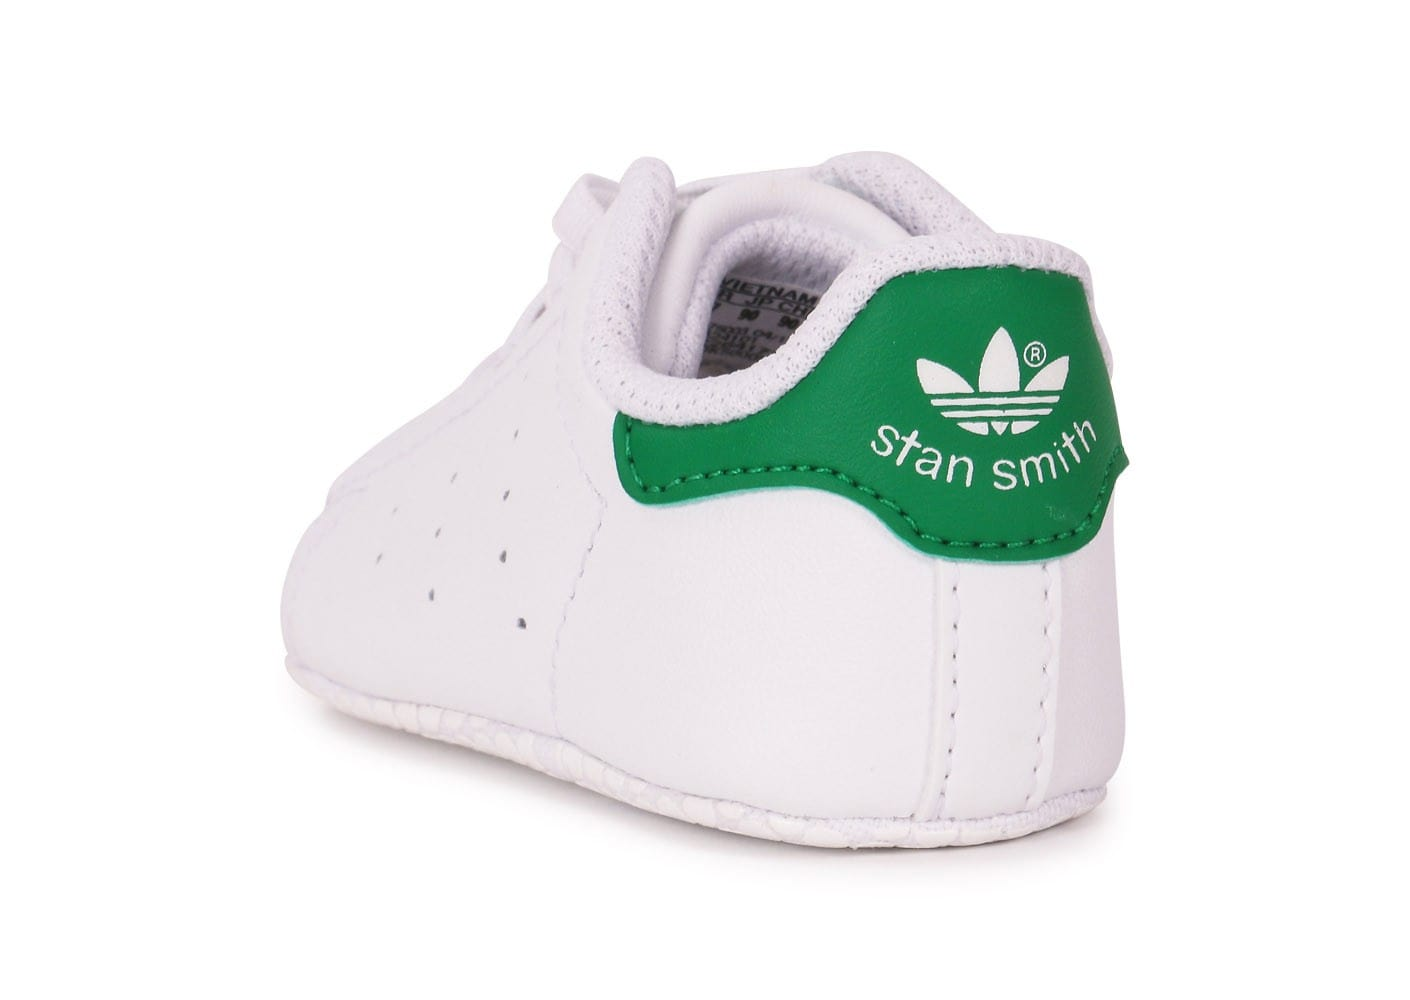 adidas stan smith b b blanche chaussures no l chausport. Black Bedroom Furniture Sets. Home Design Ideas